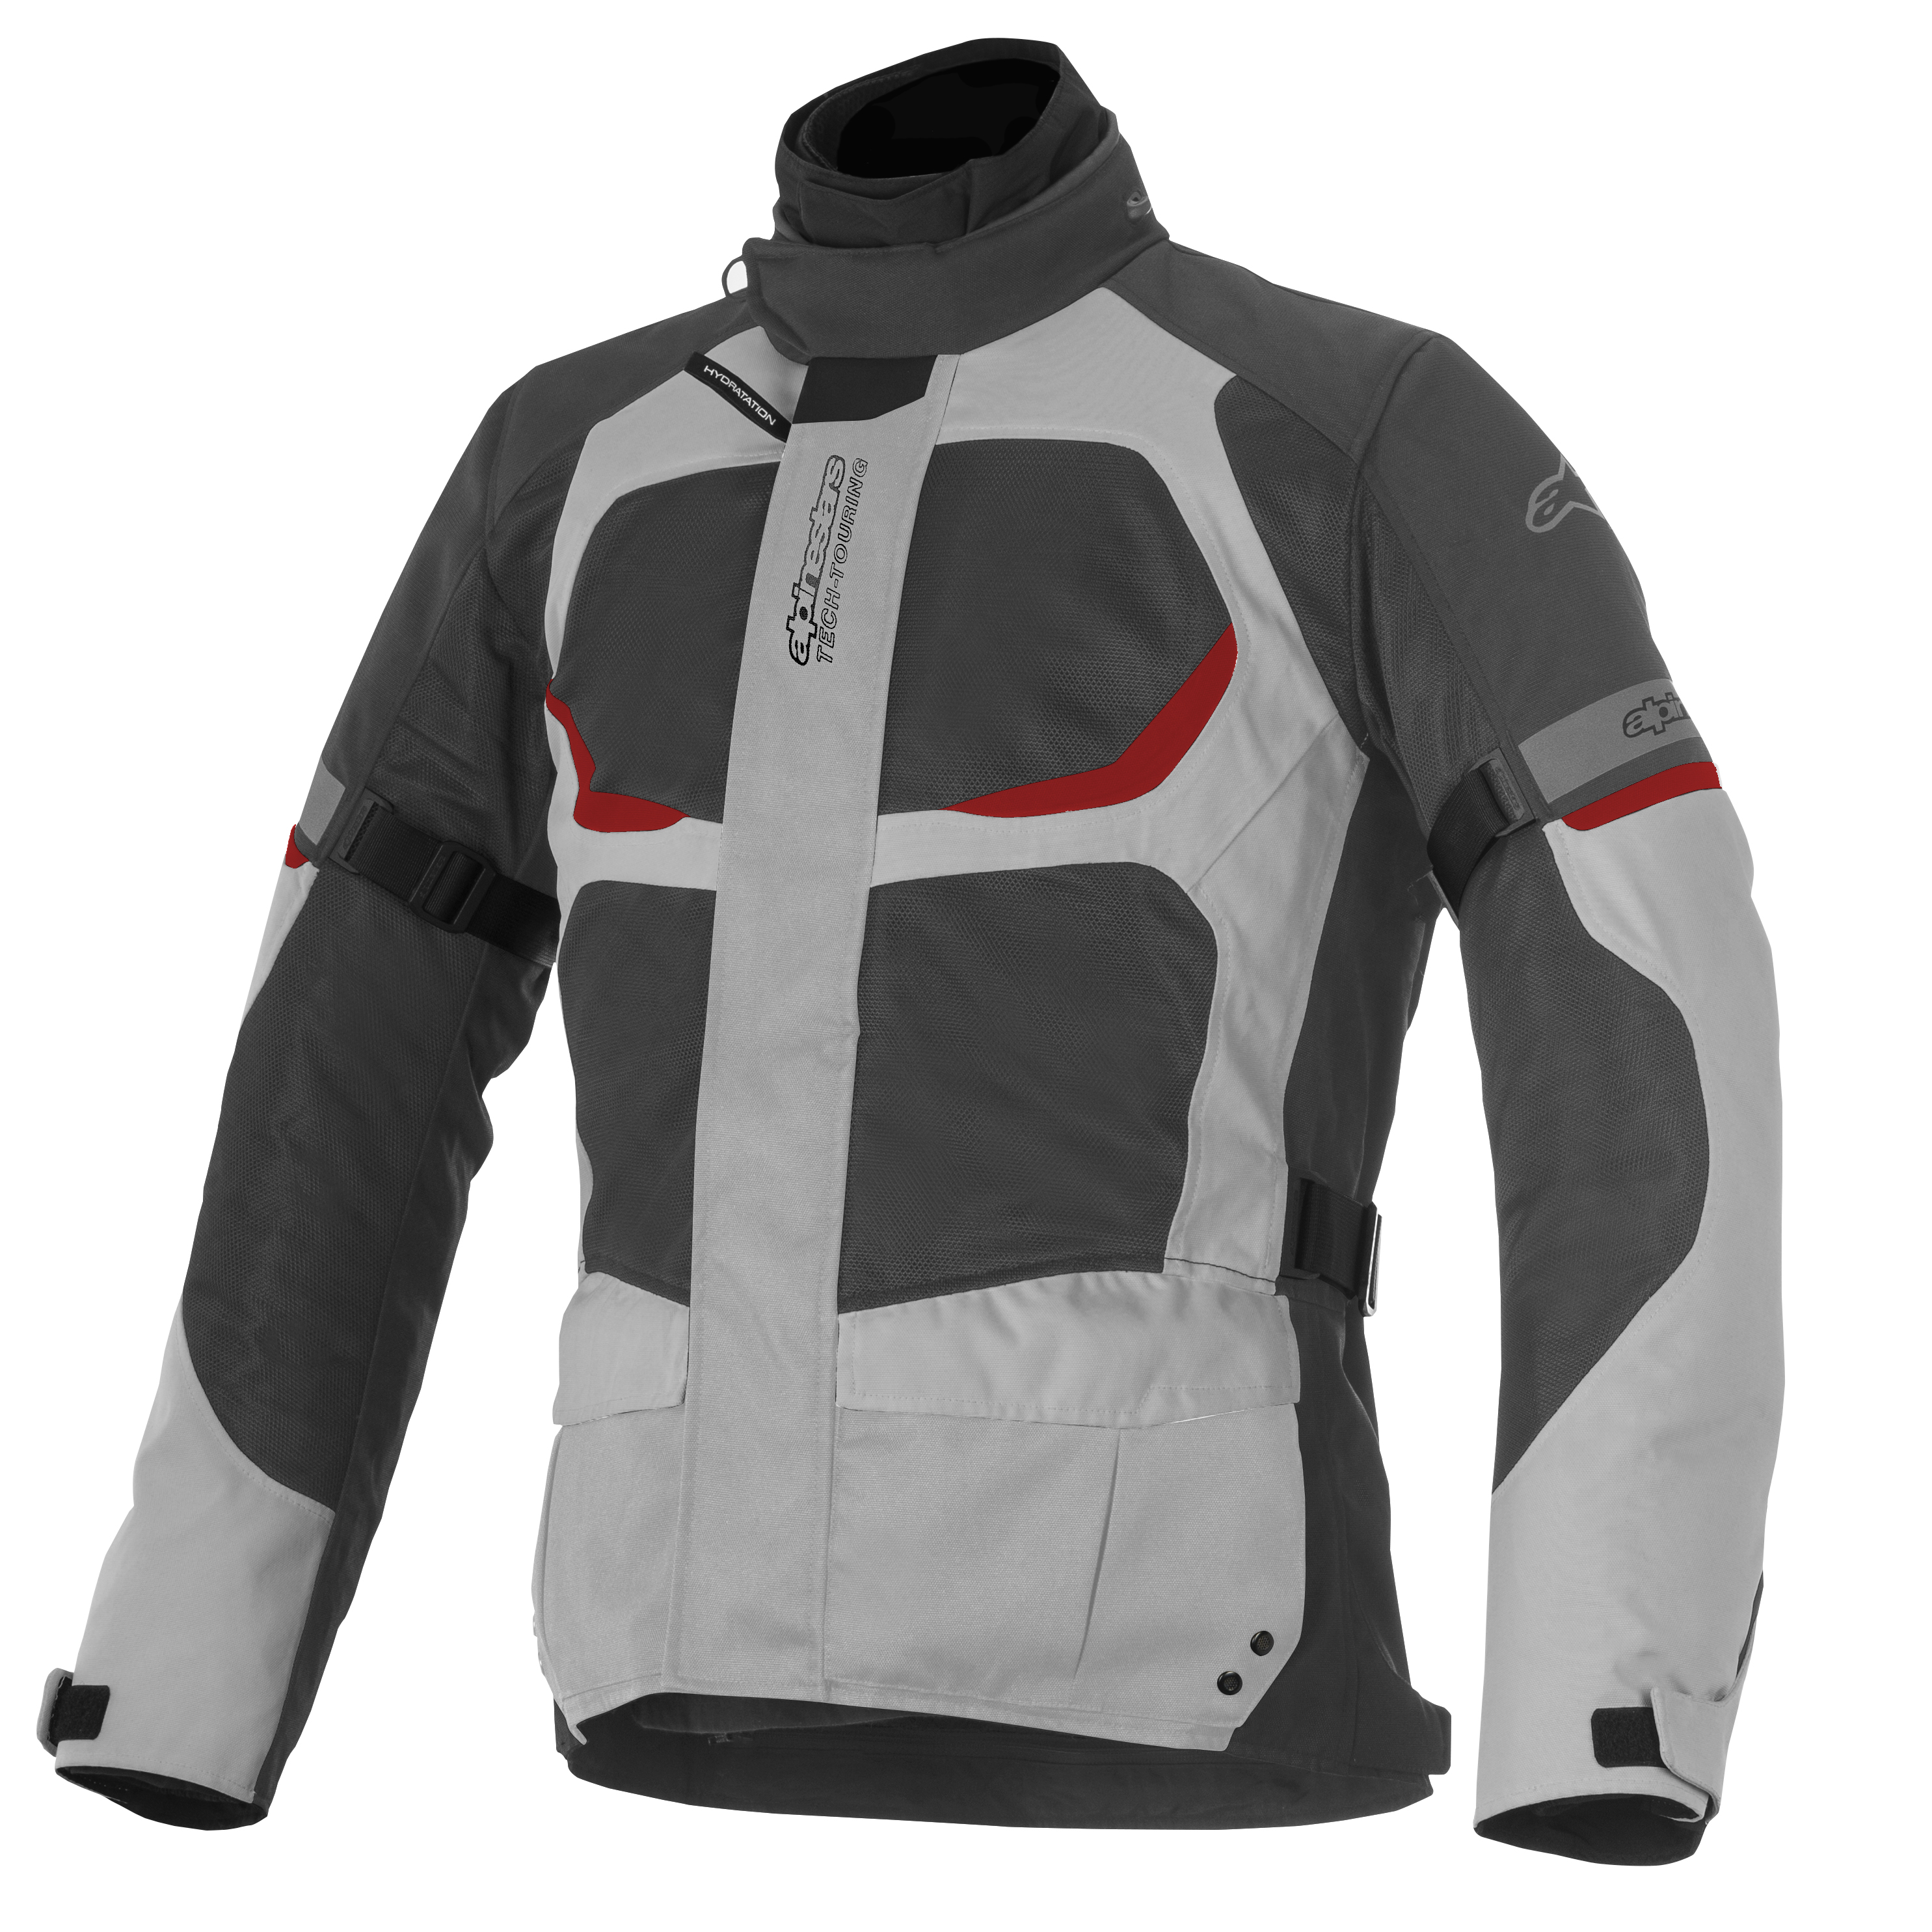 Alpinestars Spring 2016 Collection Includes New Touring